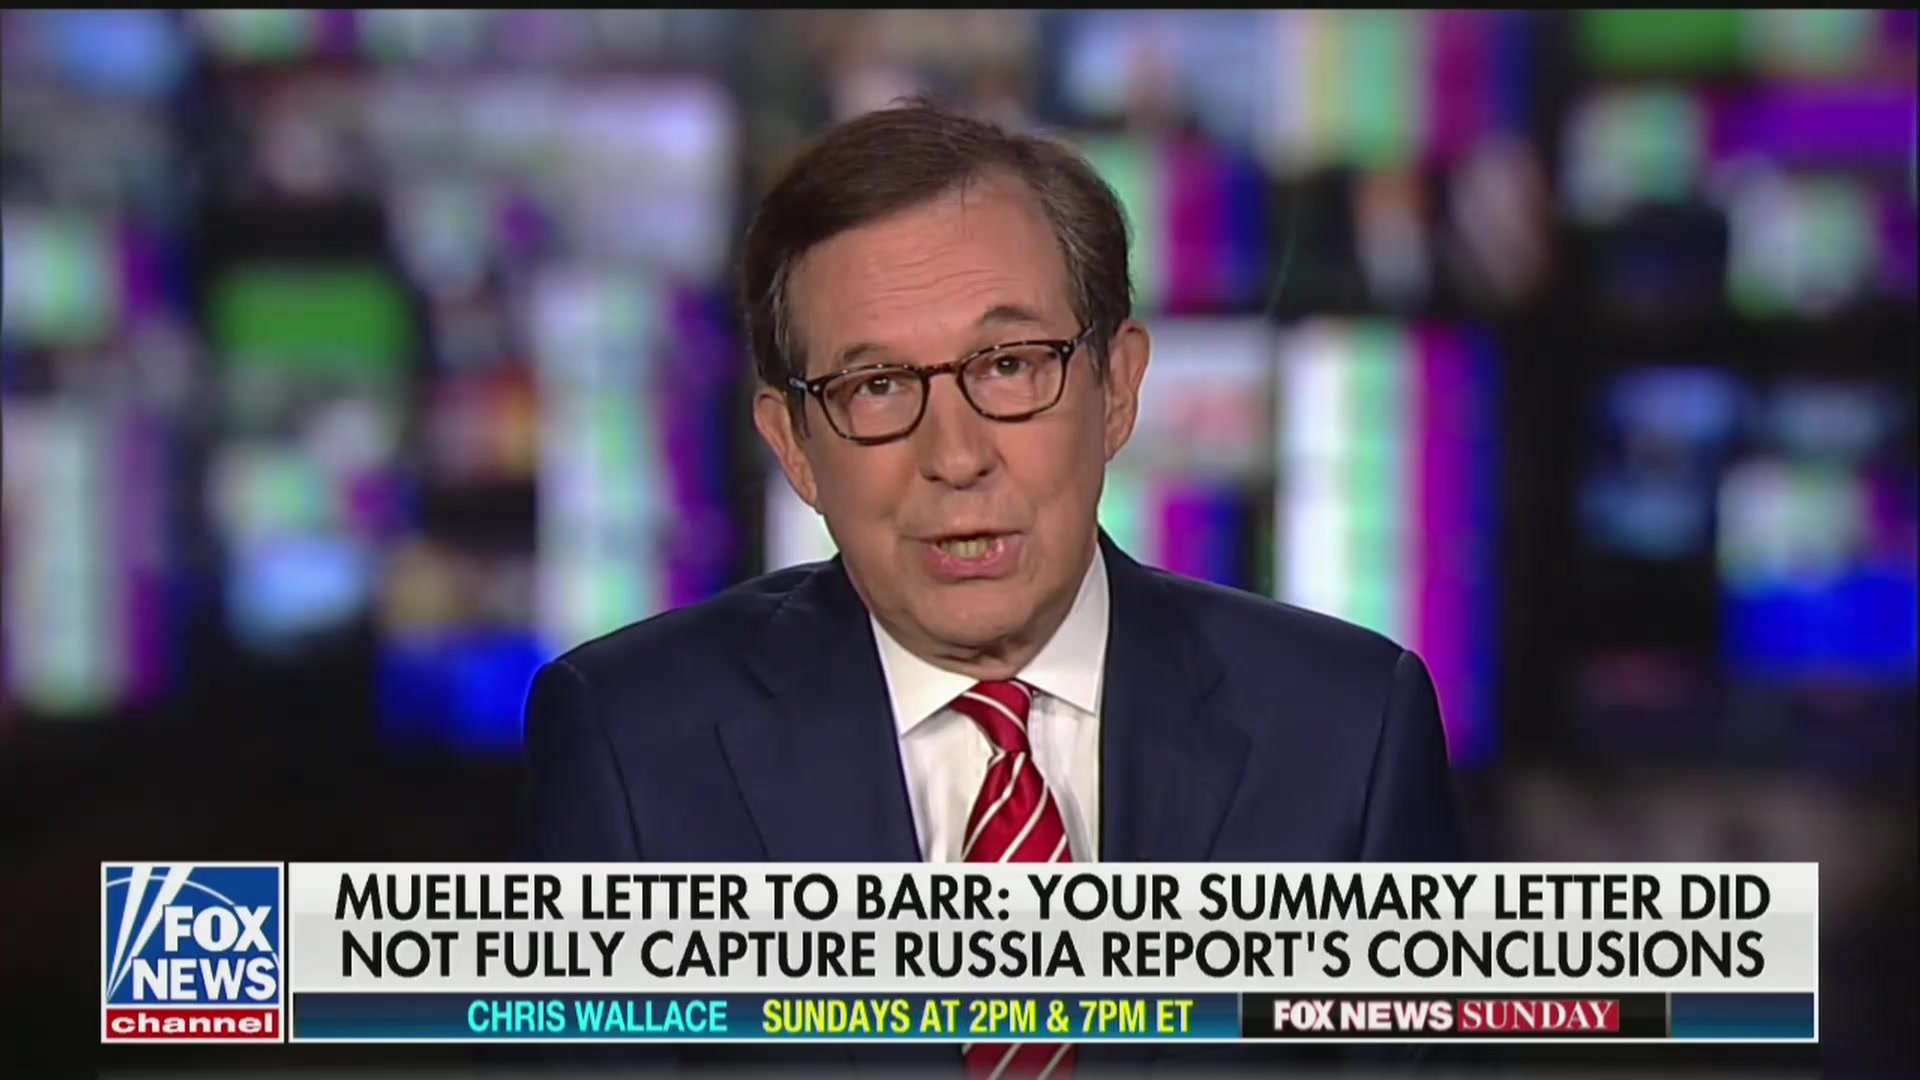 Chris Wallace Fires Back at Fox's 'Opinion People' Who Are 'Pushing a Political Agenda' on Mueller